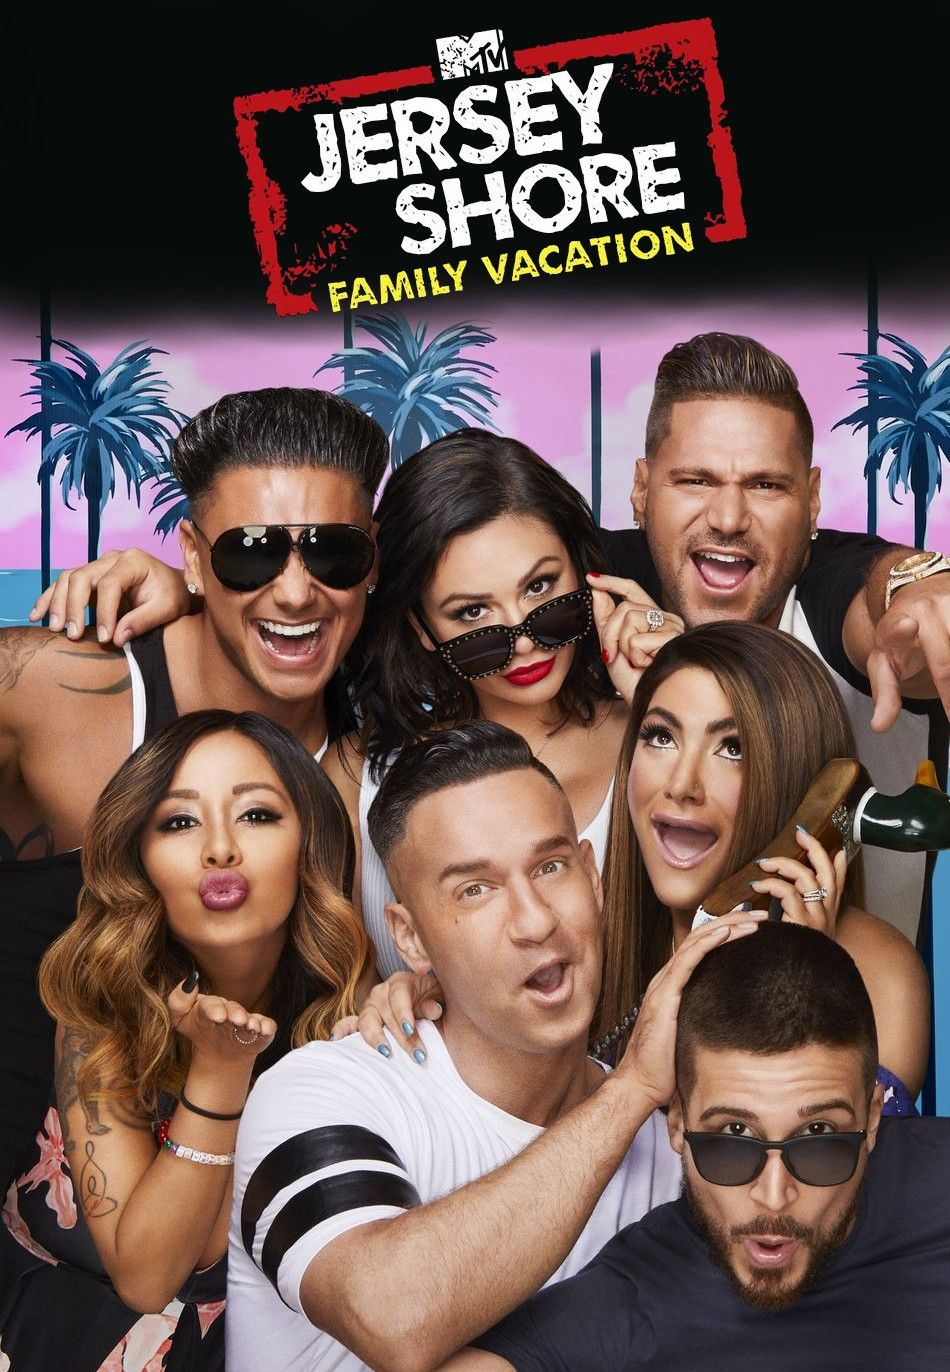 Jersey Shore Family Vacation Episode 1 Watch Online : jersey, shore, family, vacation, episode, watch, online, Jersey, Shore:, Family, Vacation, Season, Episode, Shore,, Vacation,